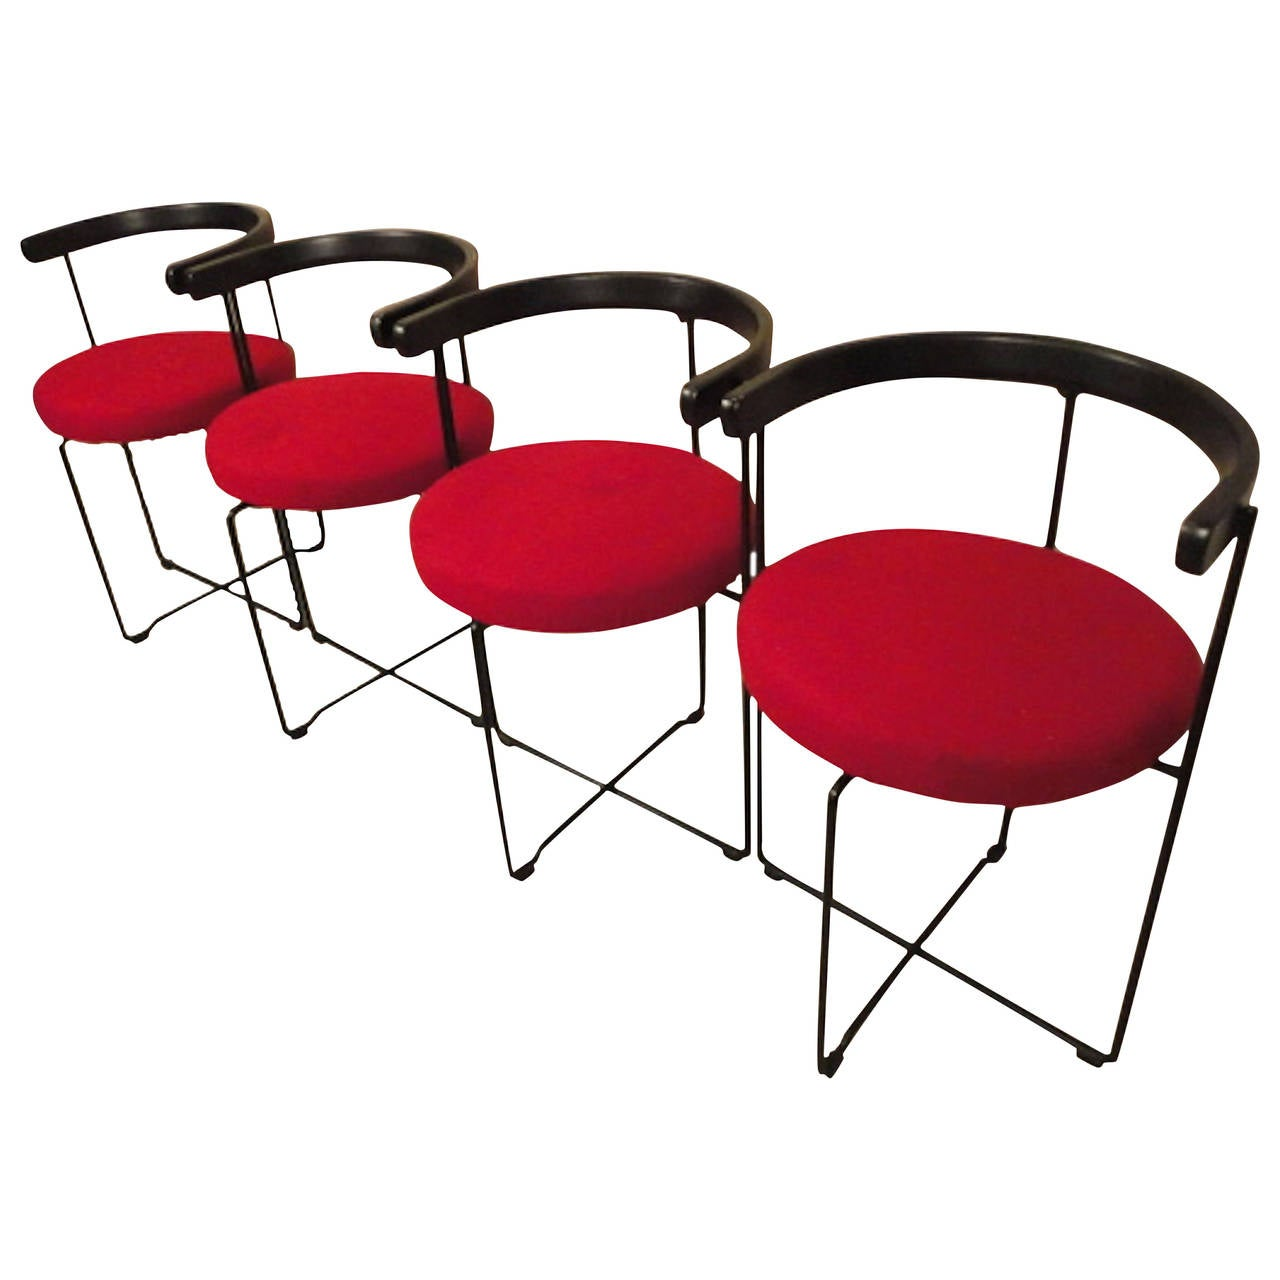 circular chairs for sale wooden skull chair four mid century modern style round back